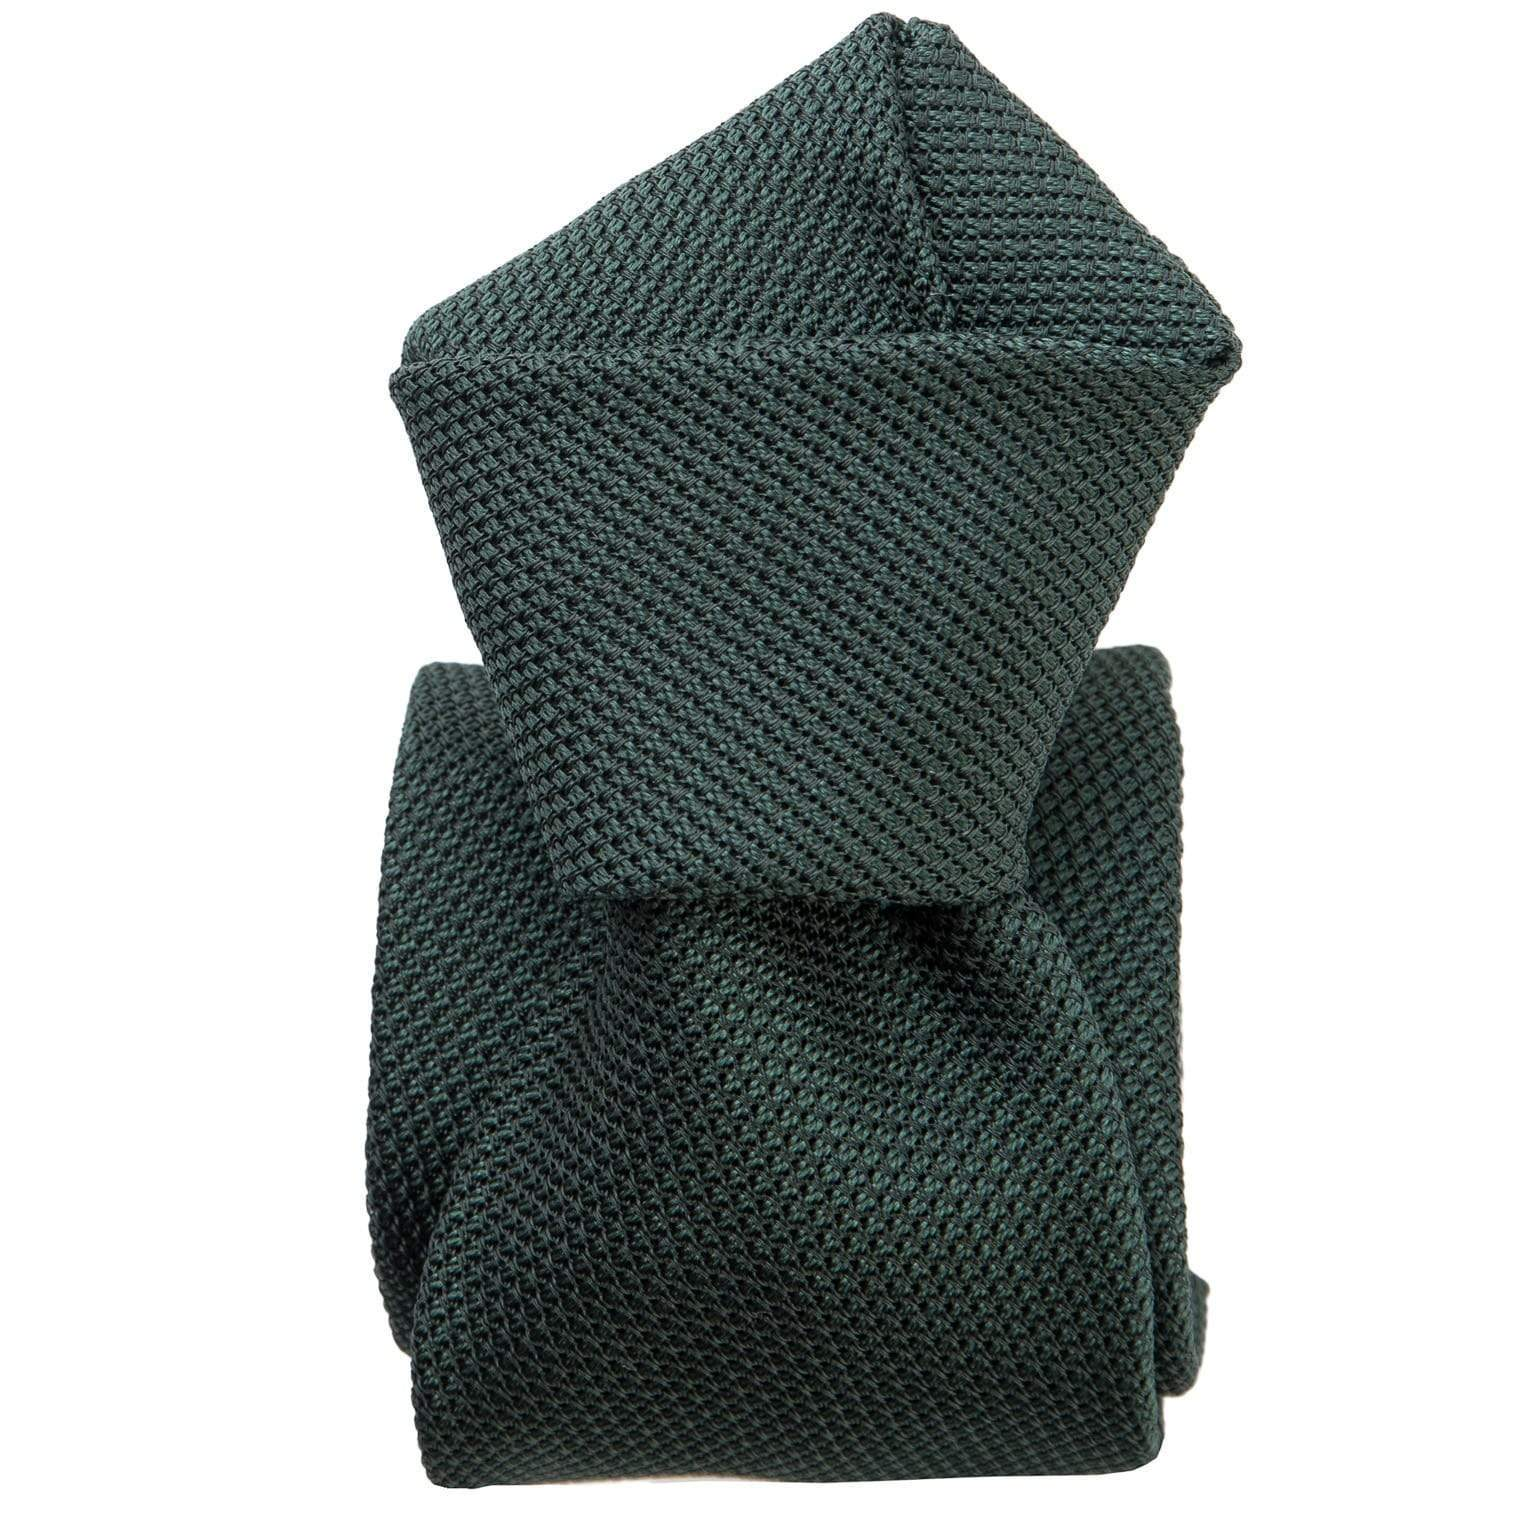 Silk Grenadine Tie - Forest Green - Made in Italy